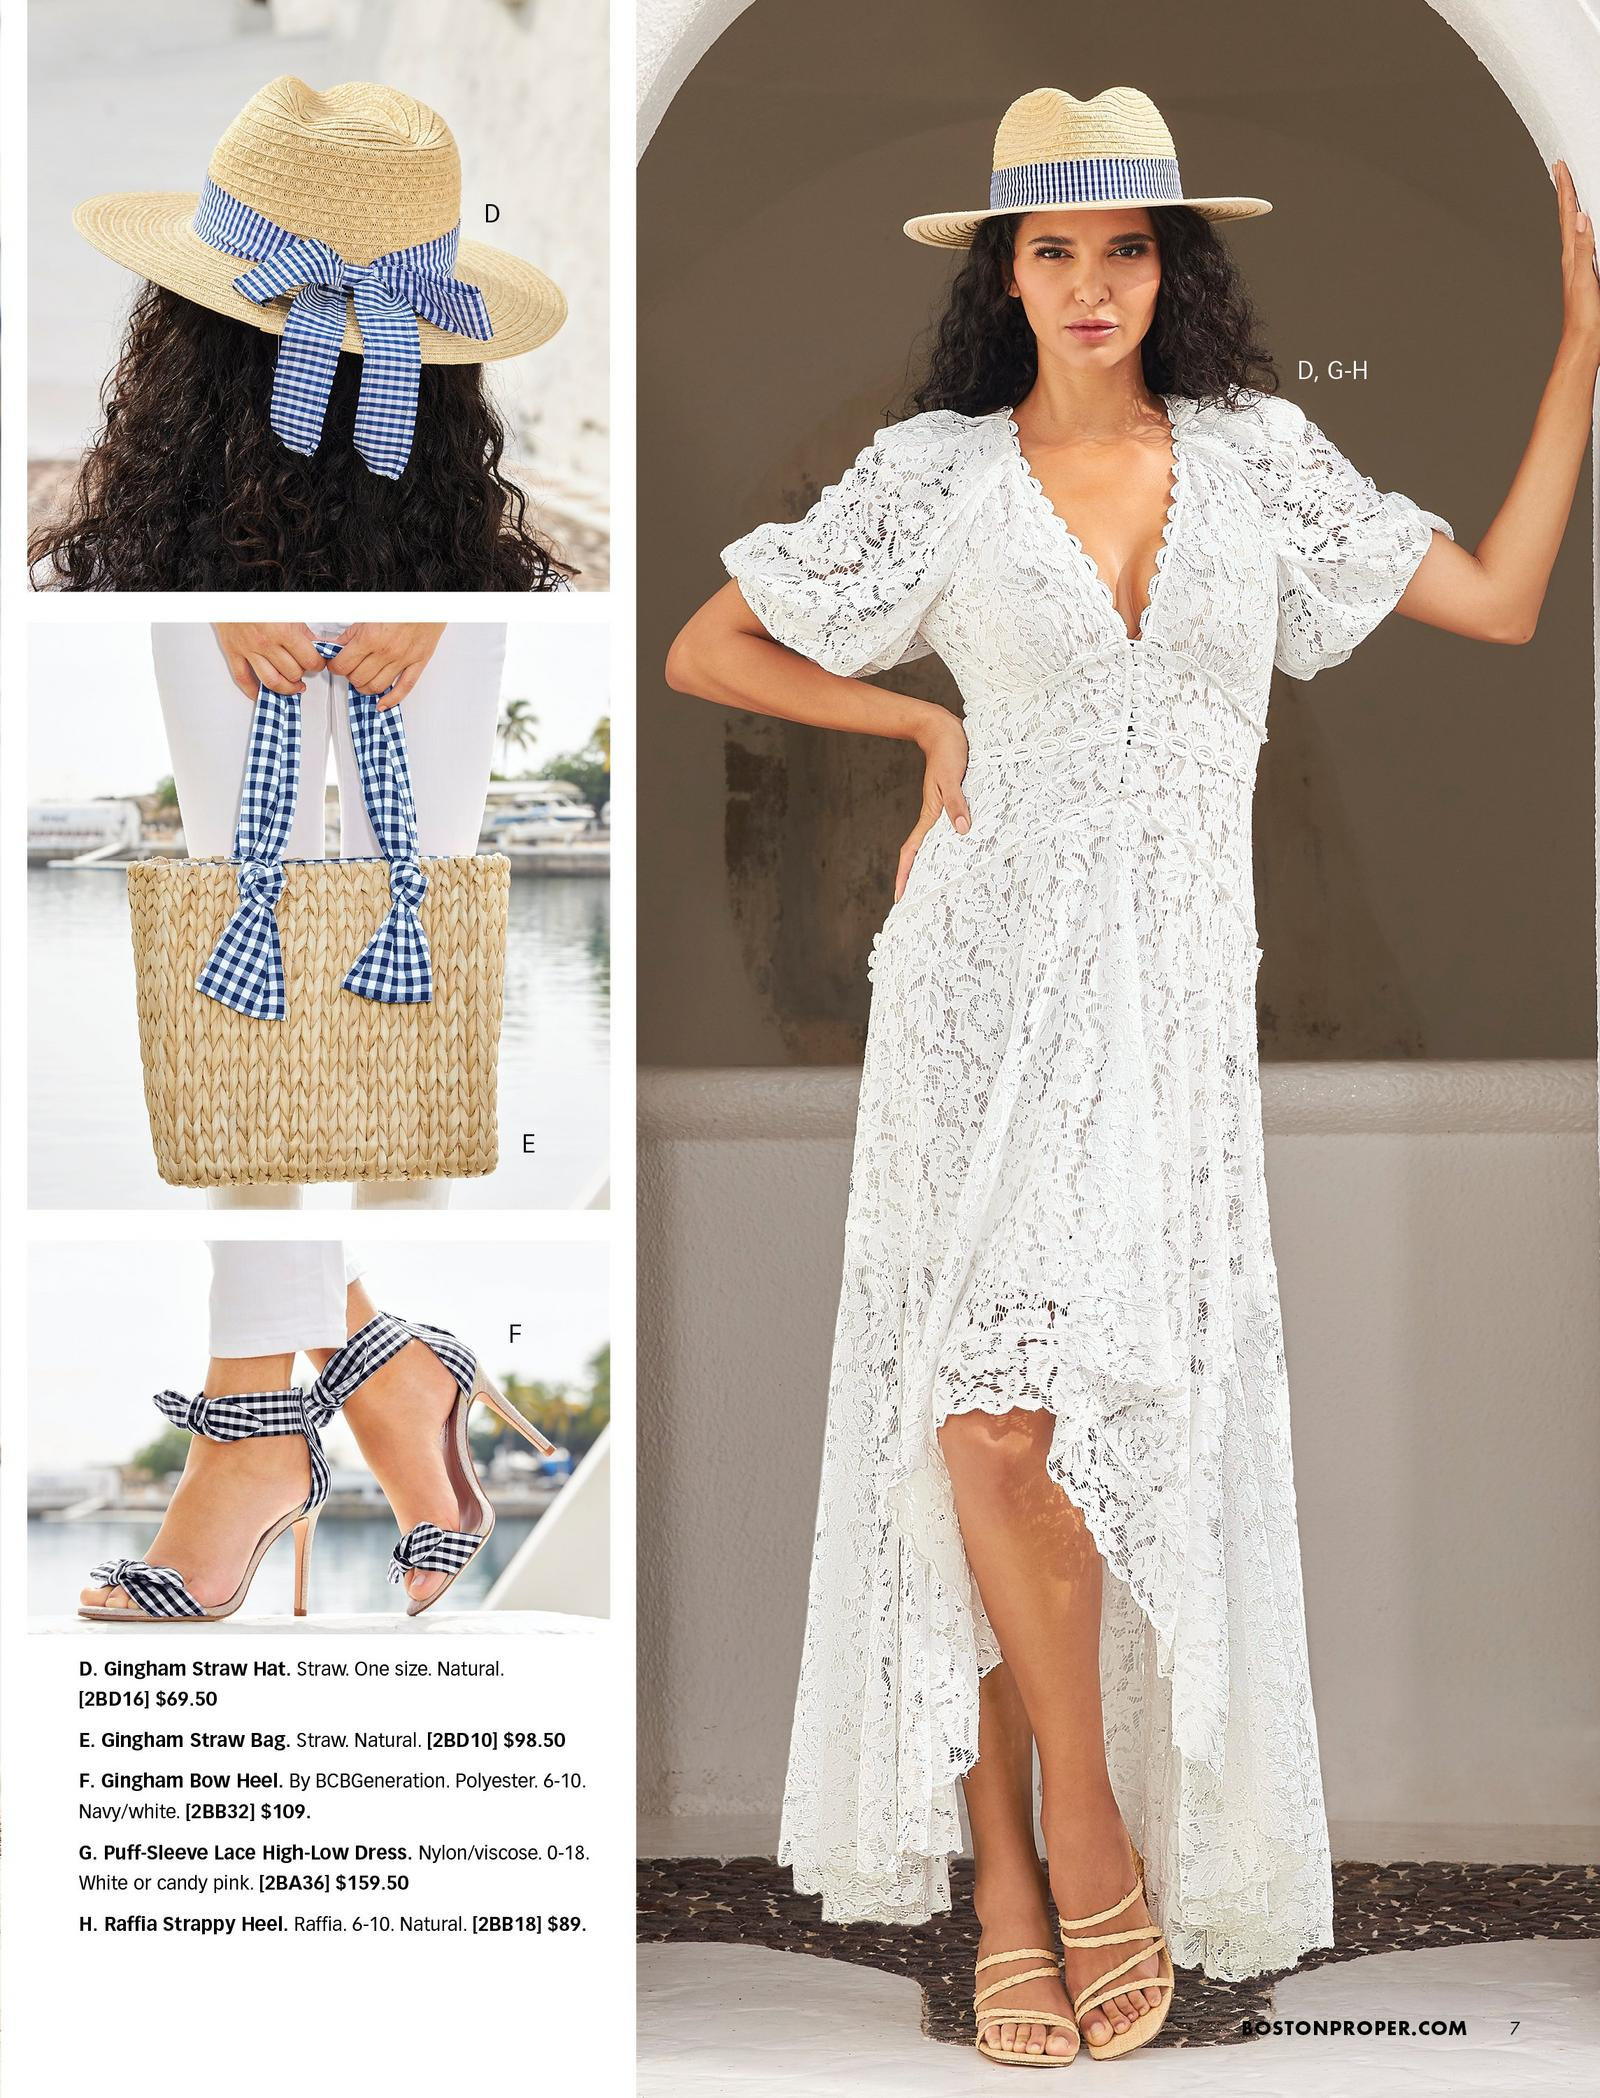 top left model wearing a straw hat with a navy gingham ribbon. middle left model holding a straw bag with a navy gingham ribbon handle. bottom left model wearing navy gingham bow heels. right model wearing a white lace high-low maxi dress, raffia strappy heels, and a straw hat with a navy gingham ribbon.